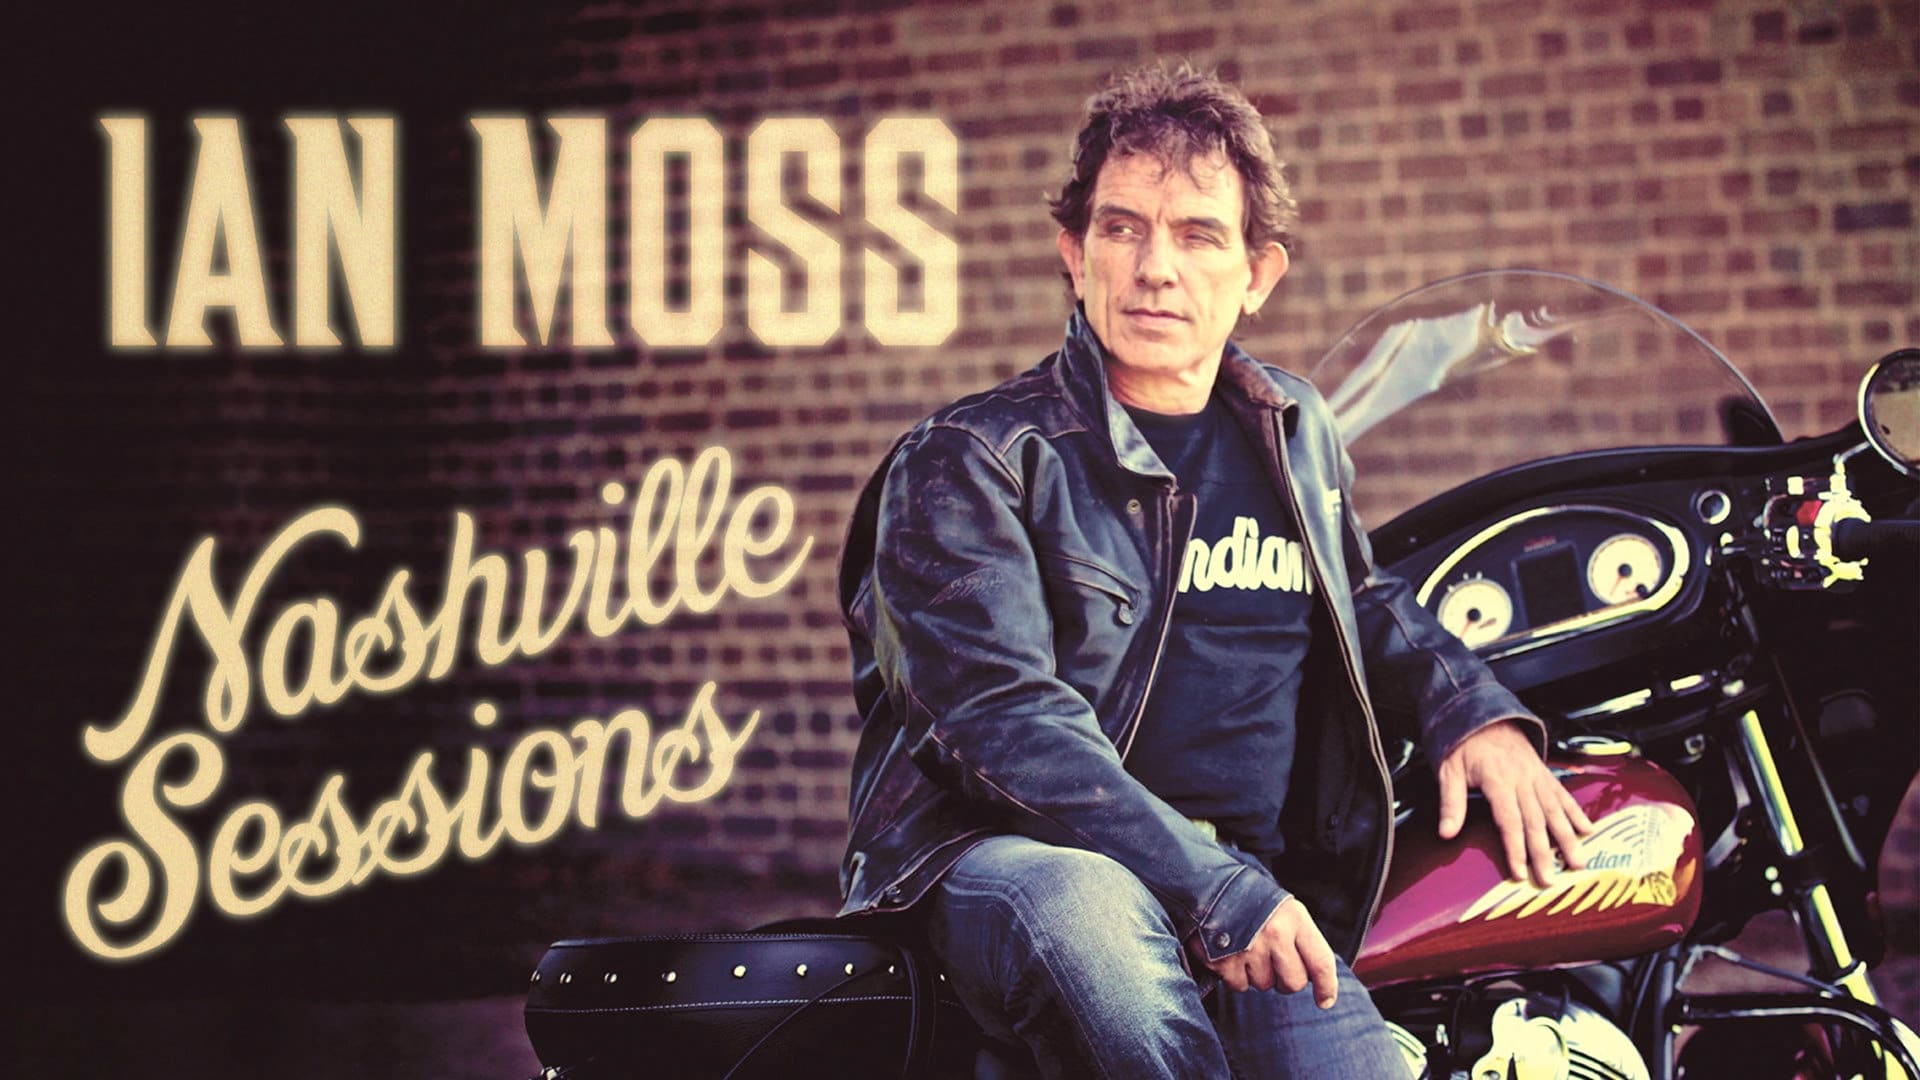 Ian Moss - Nashville Sessions